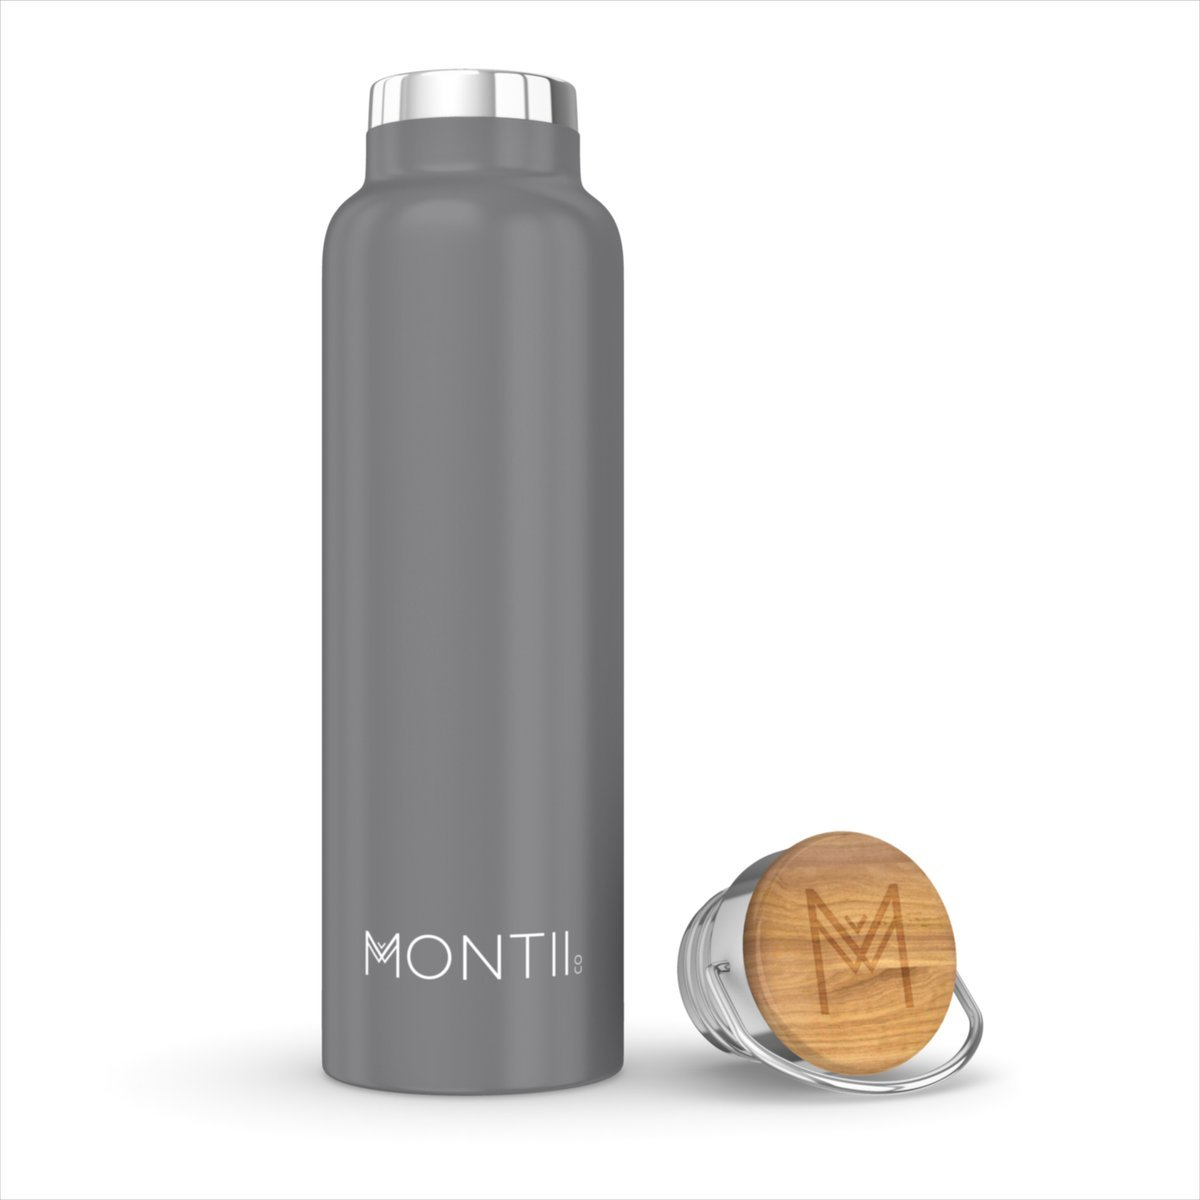 Montii Co Insulated Bottle 600ml Montii Water Bottles Grey at Little Earth Nest Eco Shop